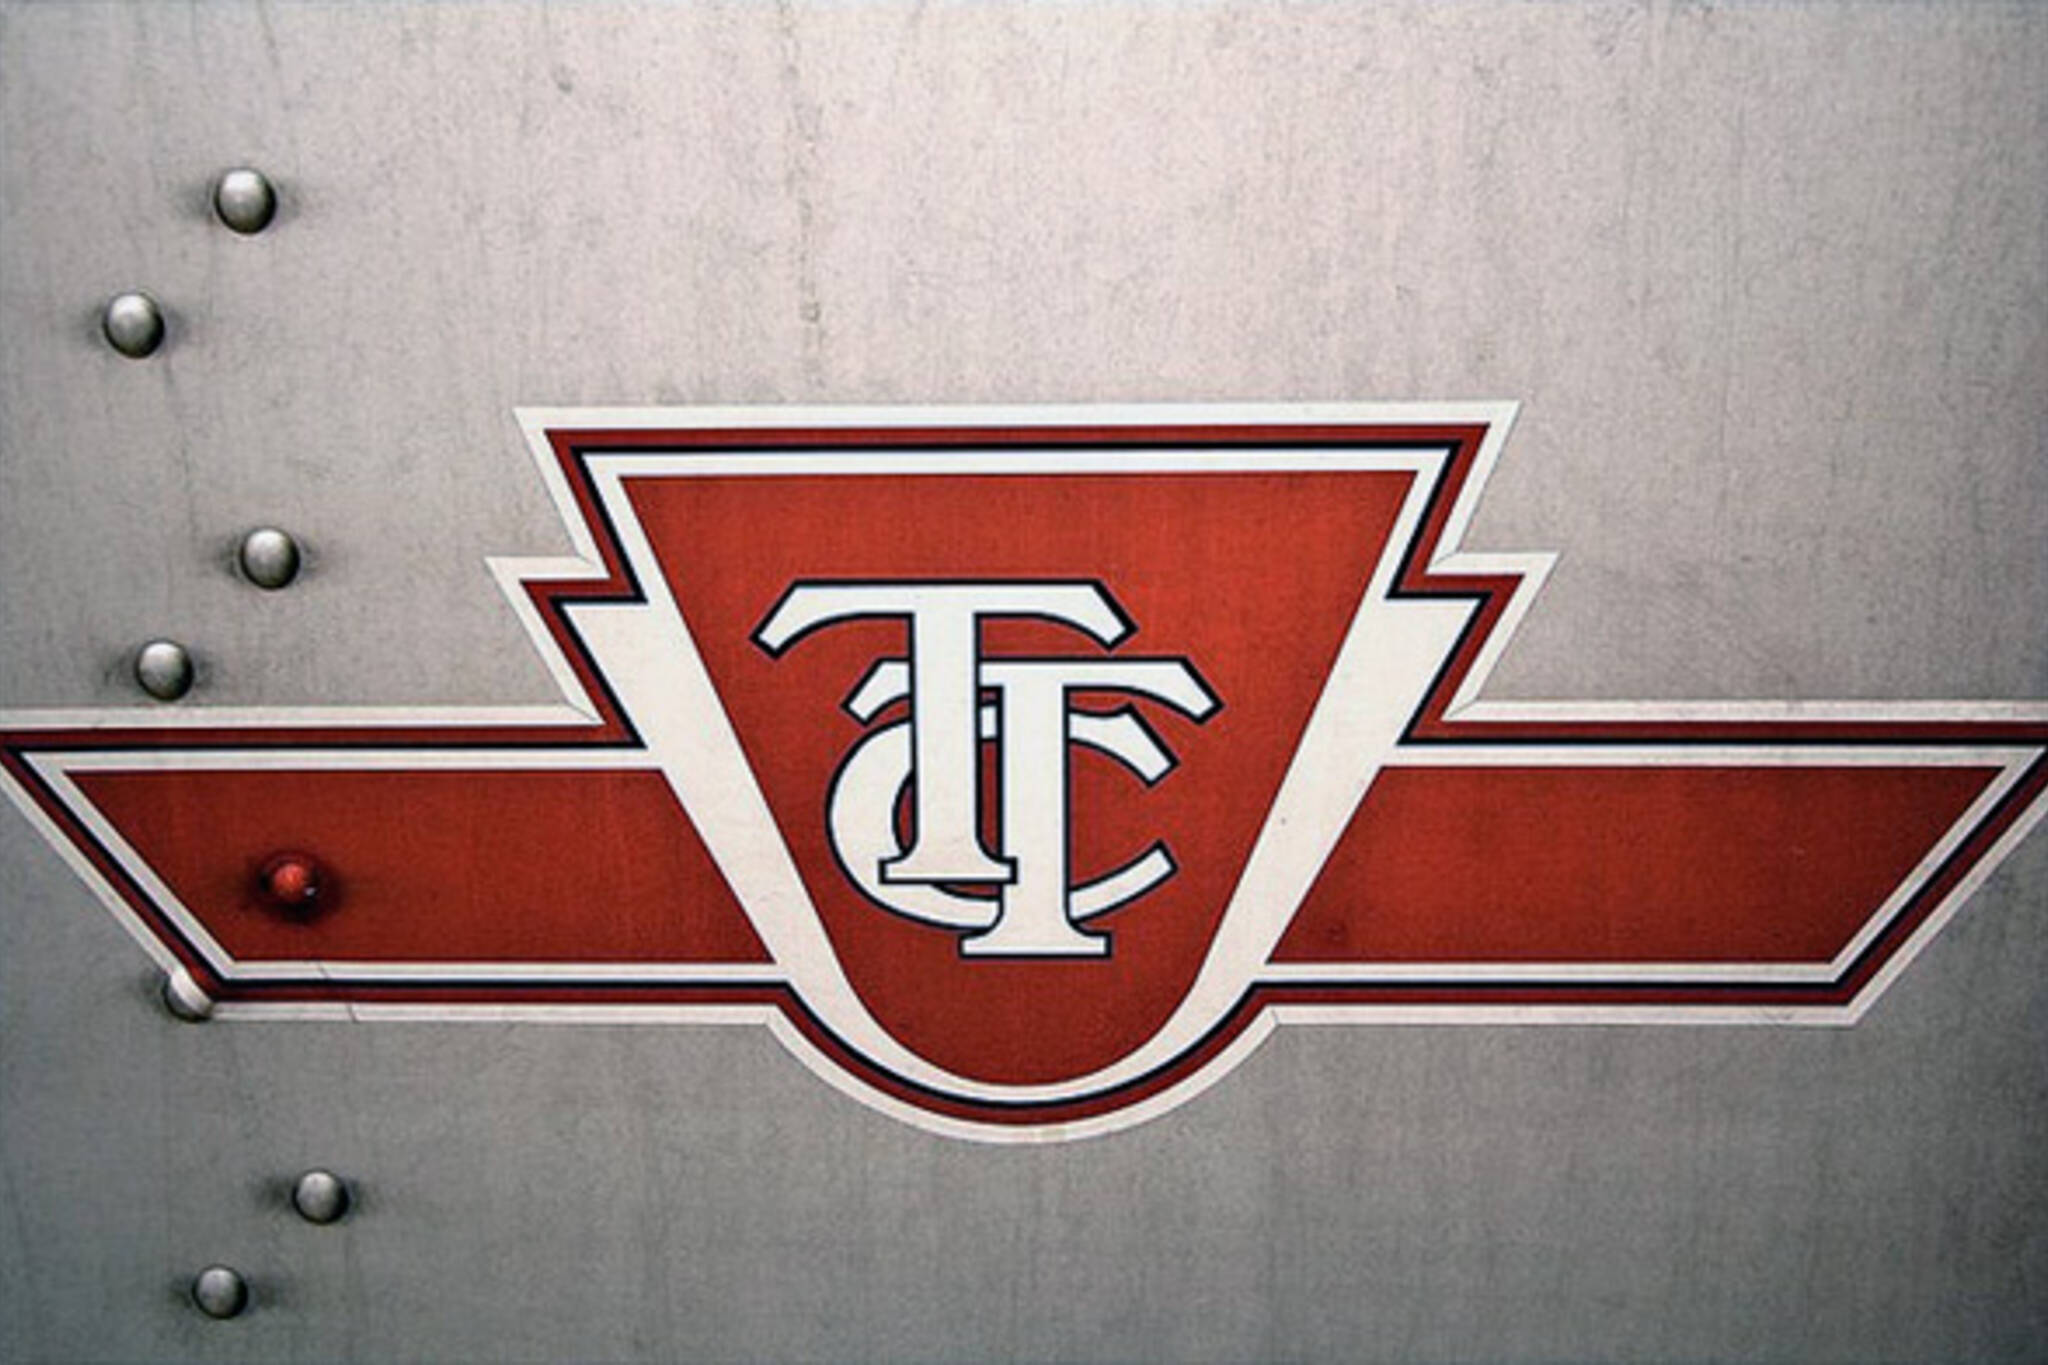 Gary Webster Fired TTC